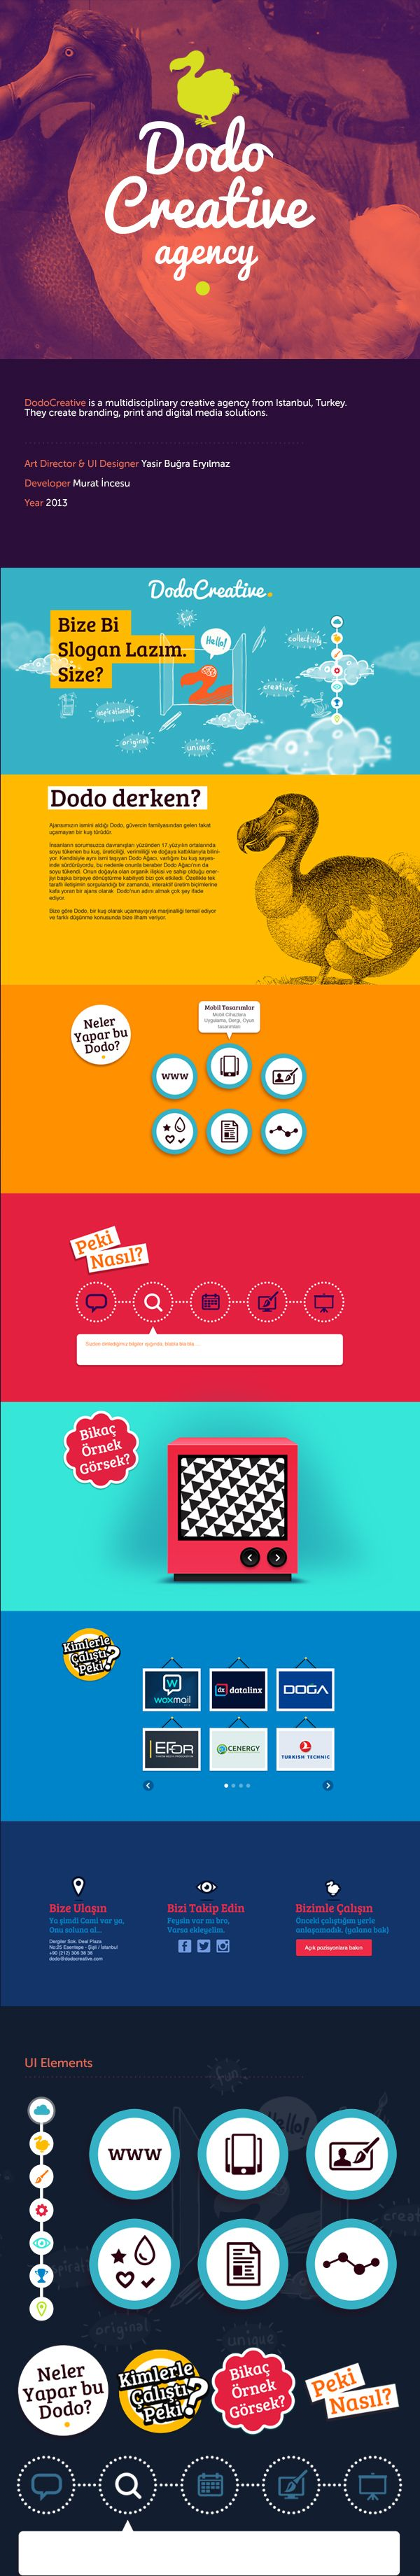 DodoCreative Website by Yasir Buğra Eryılmaz, via Behance